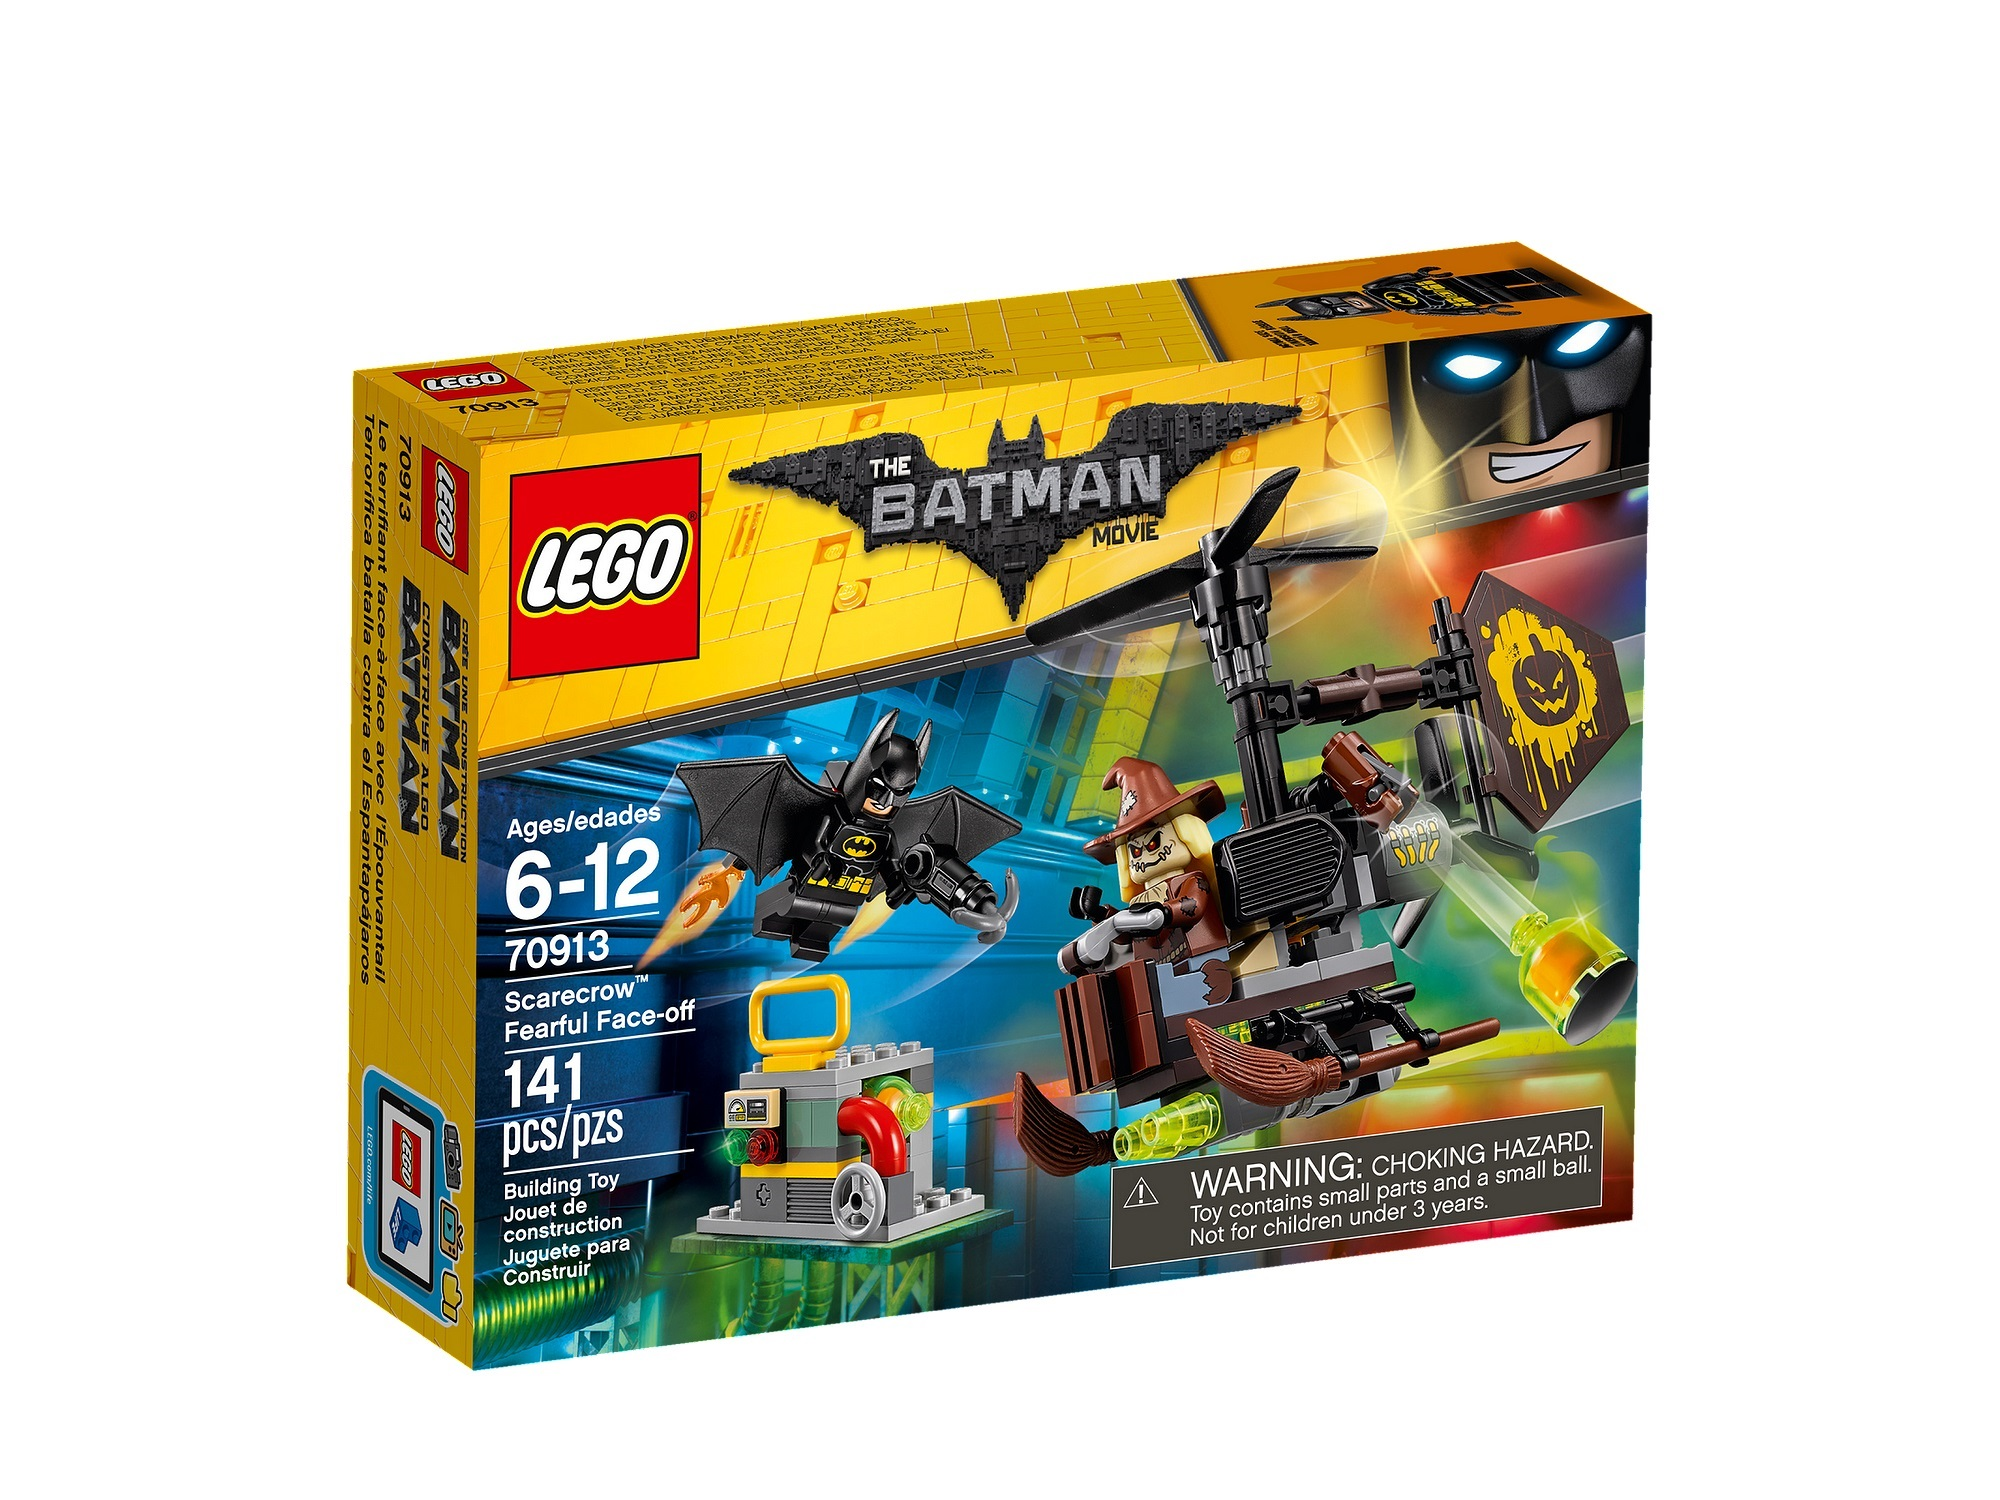 Preview Lego Batman Movie Summer 2017 Sets Jay S Brick Blog